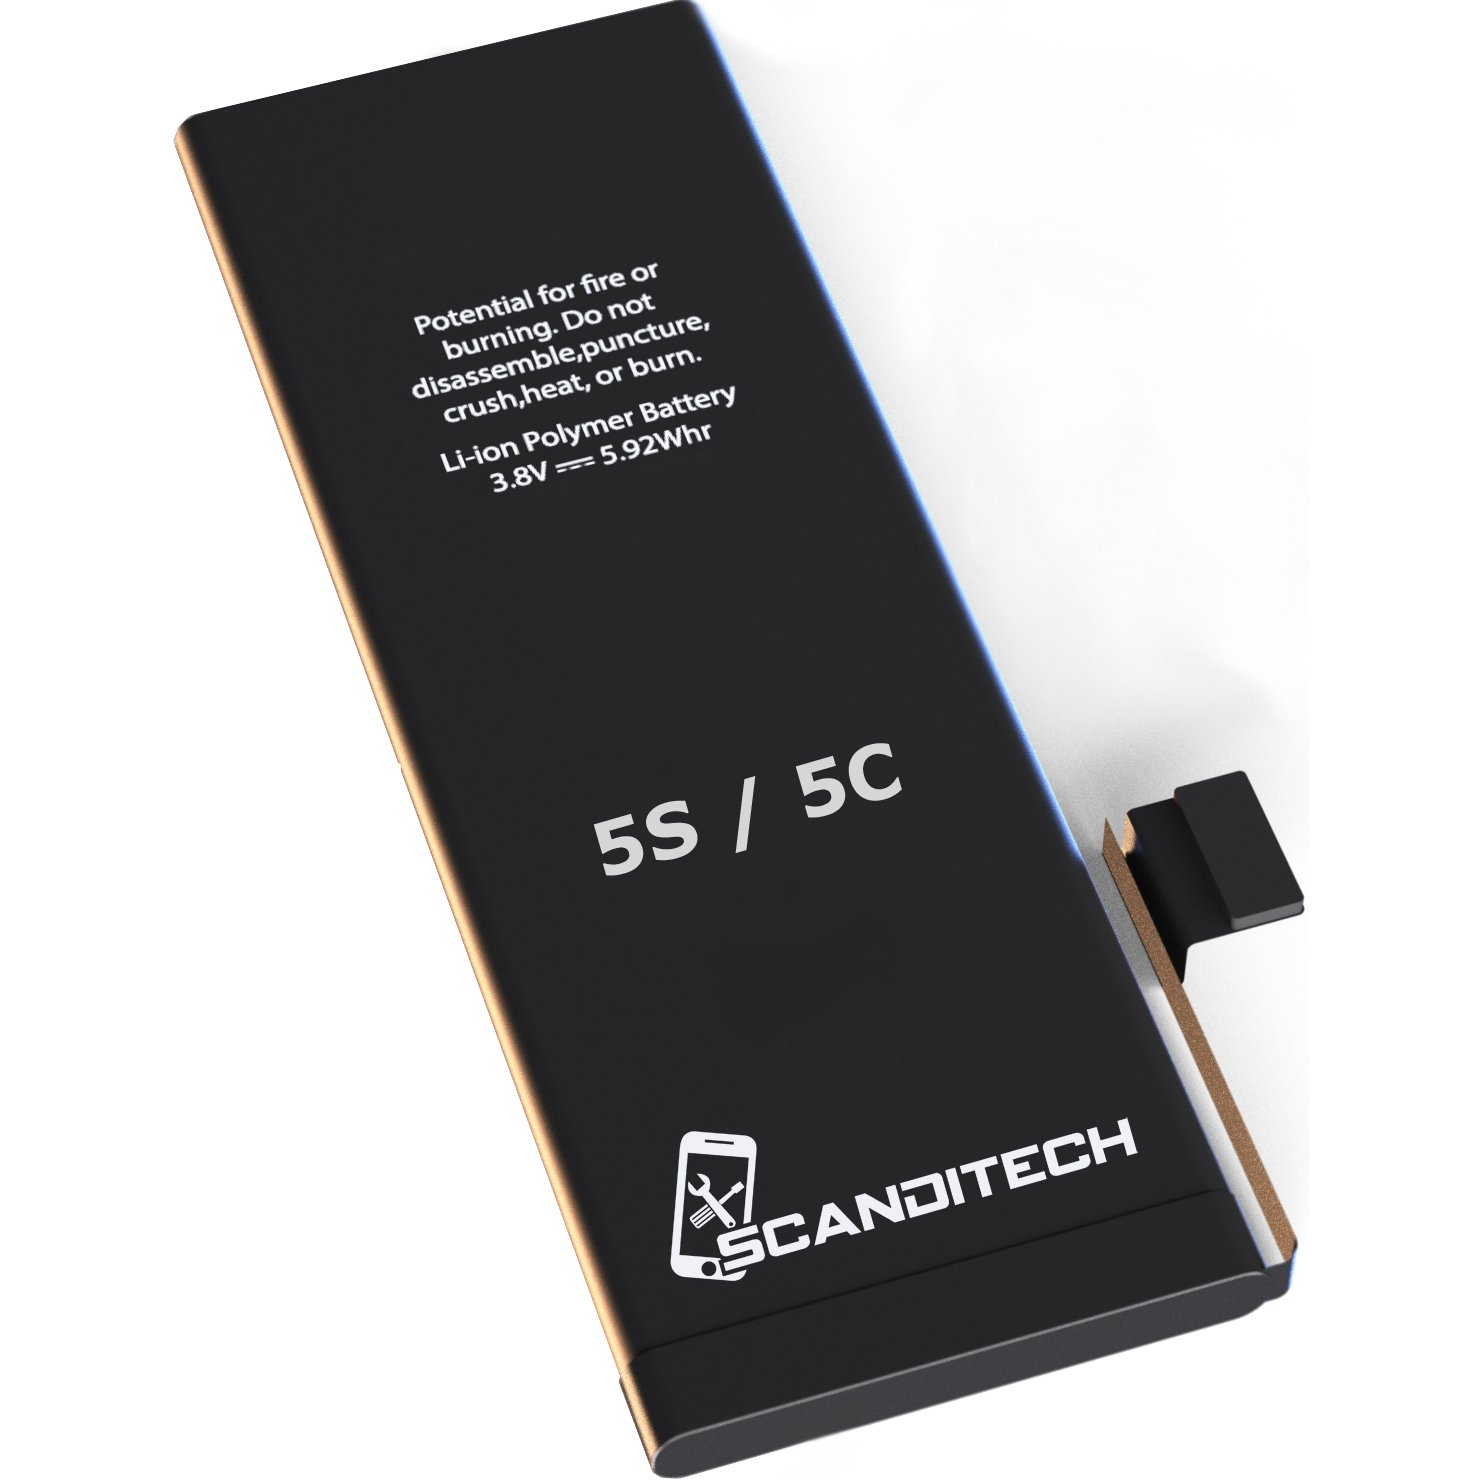 ScandiTech Battery Model iP5S-5C - With Adhesive & Instructions (no tools) - New 1560 mAh 0 Cycle Replacement Battery - Repair Your Phone in 15 min - 1 Year Warranty